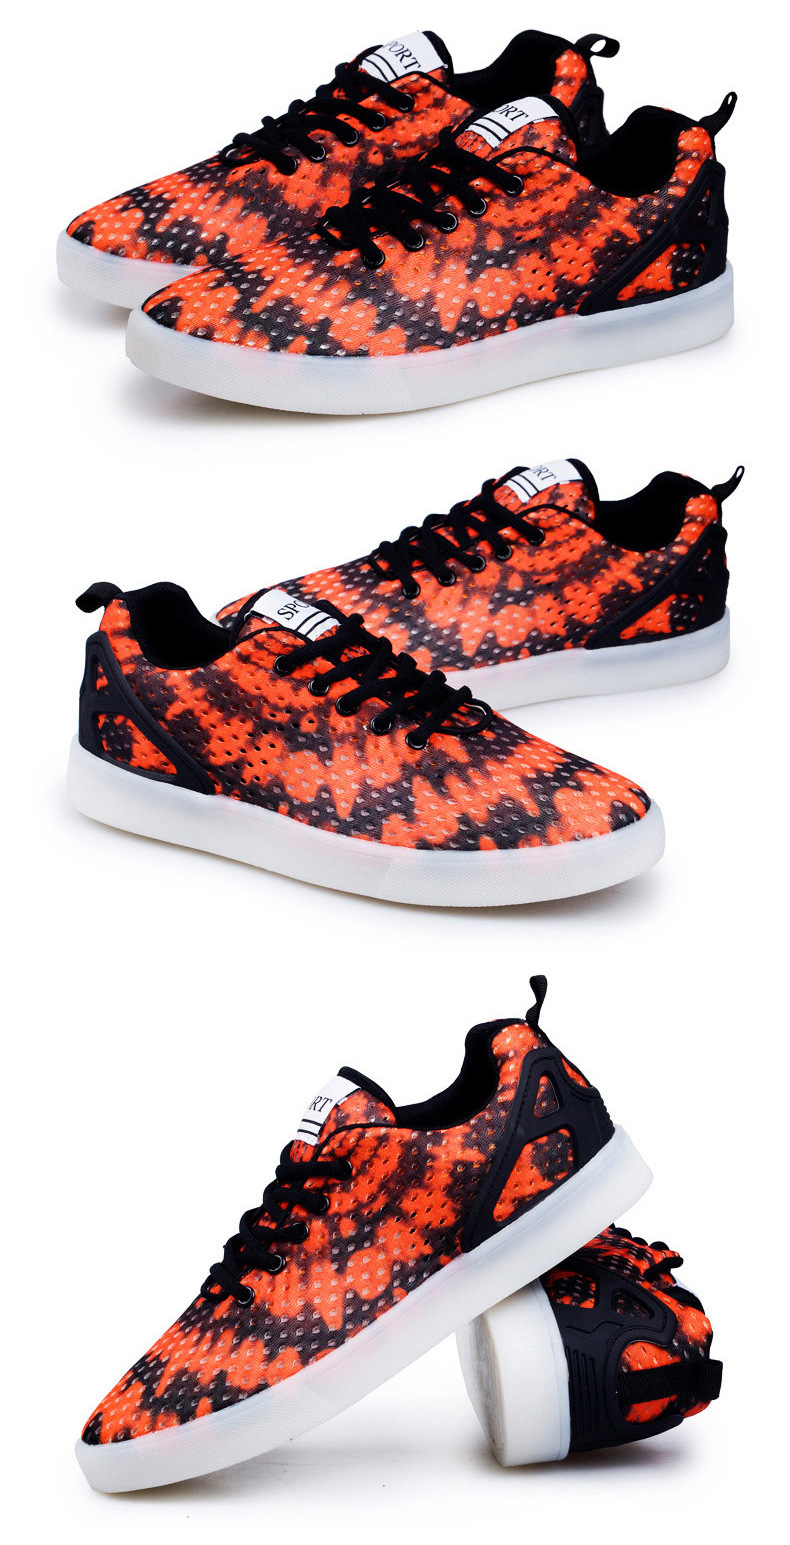 Led Sneakers Honeycomb 2